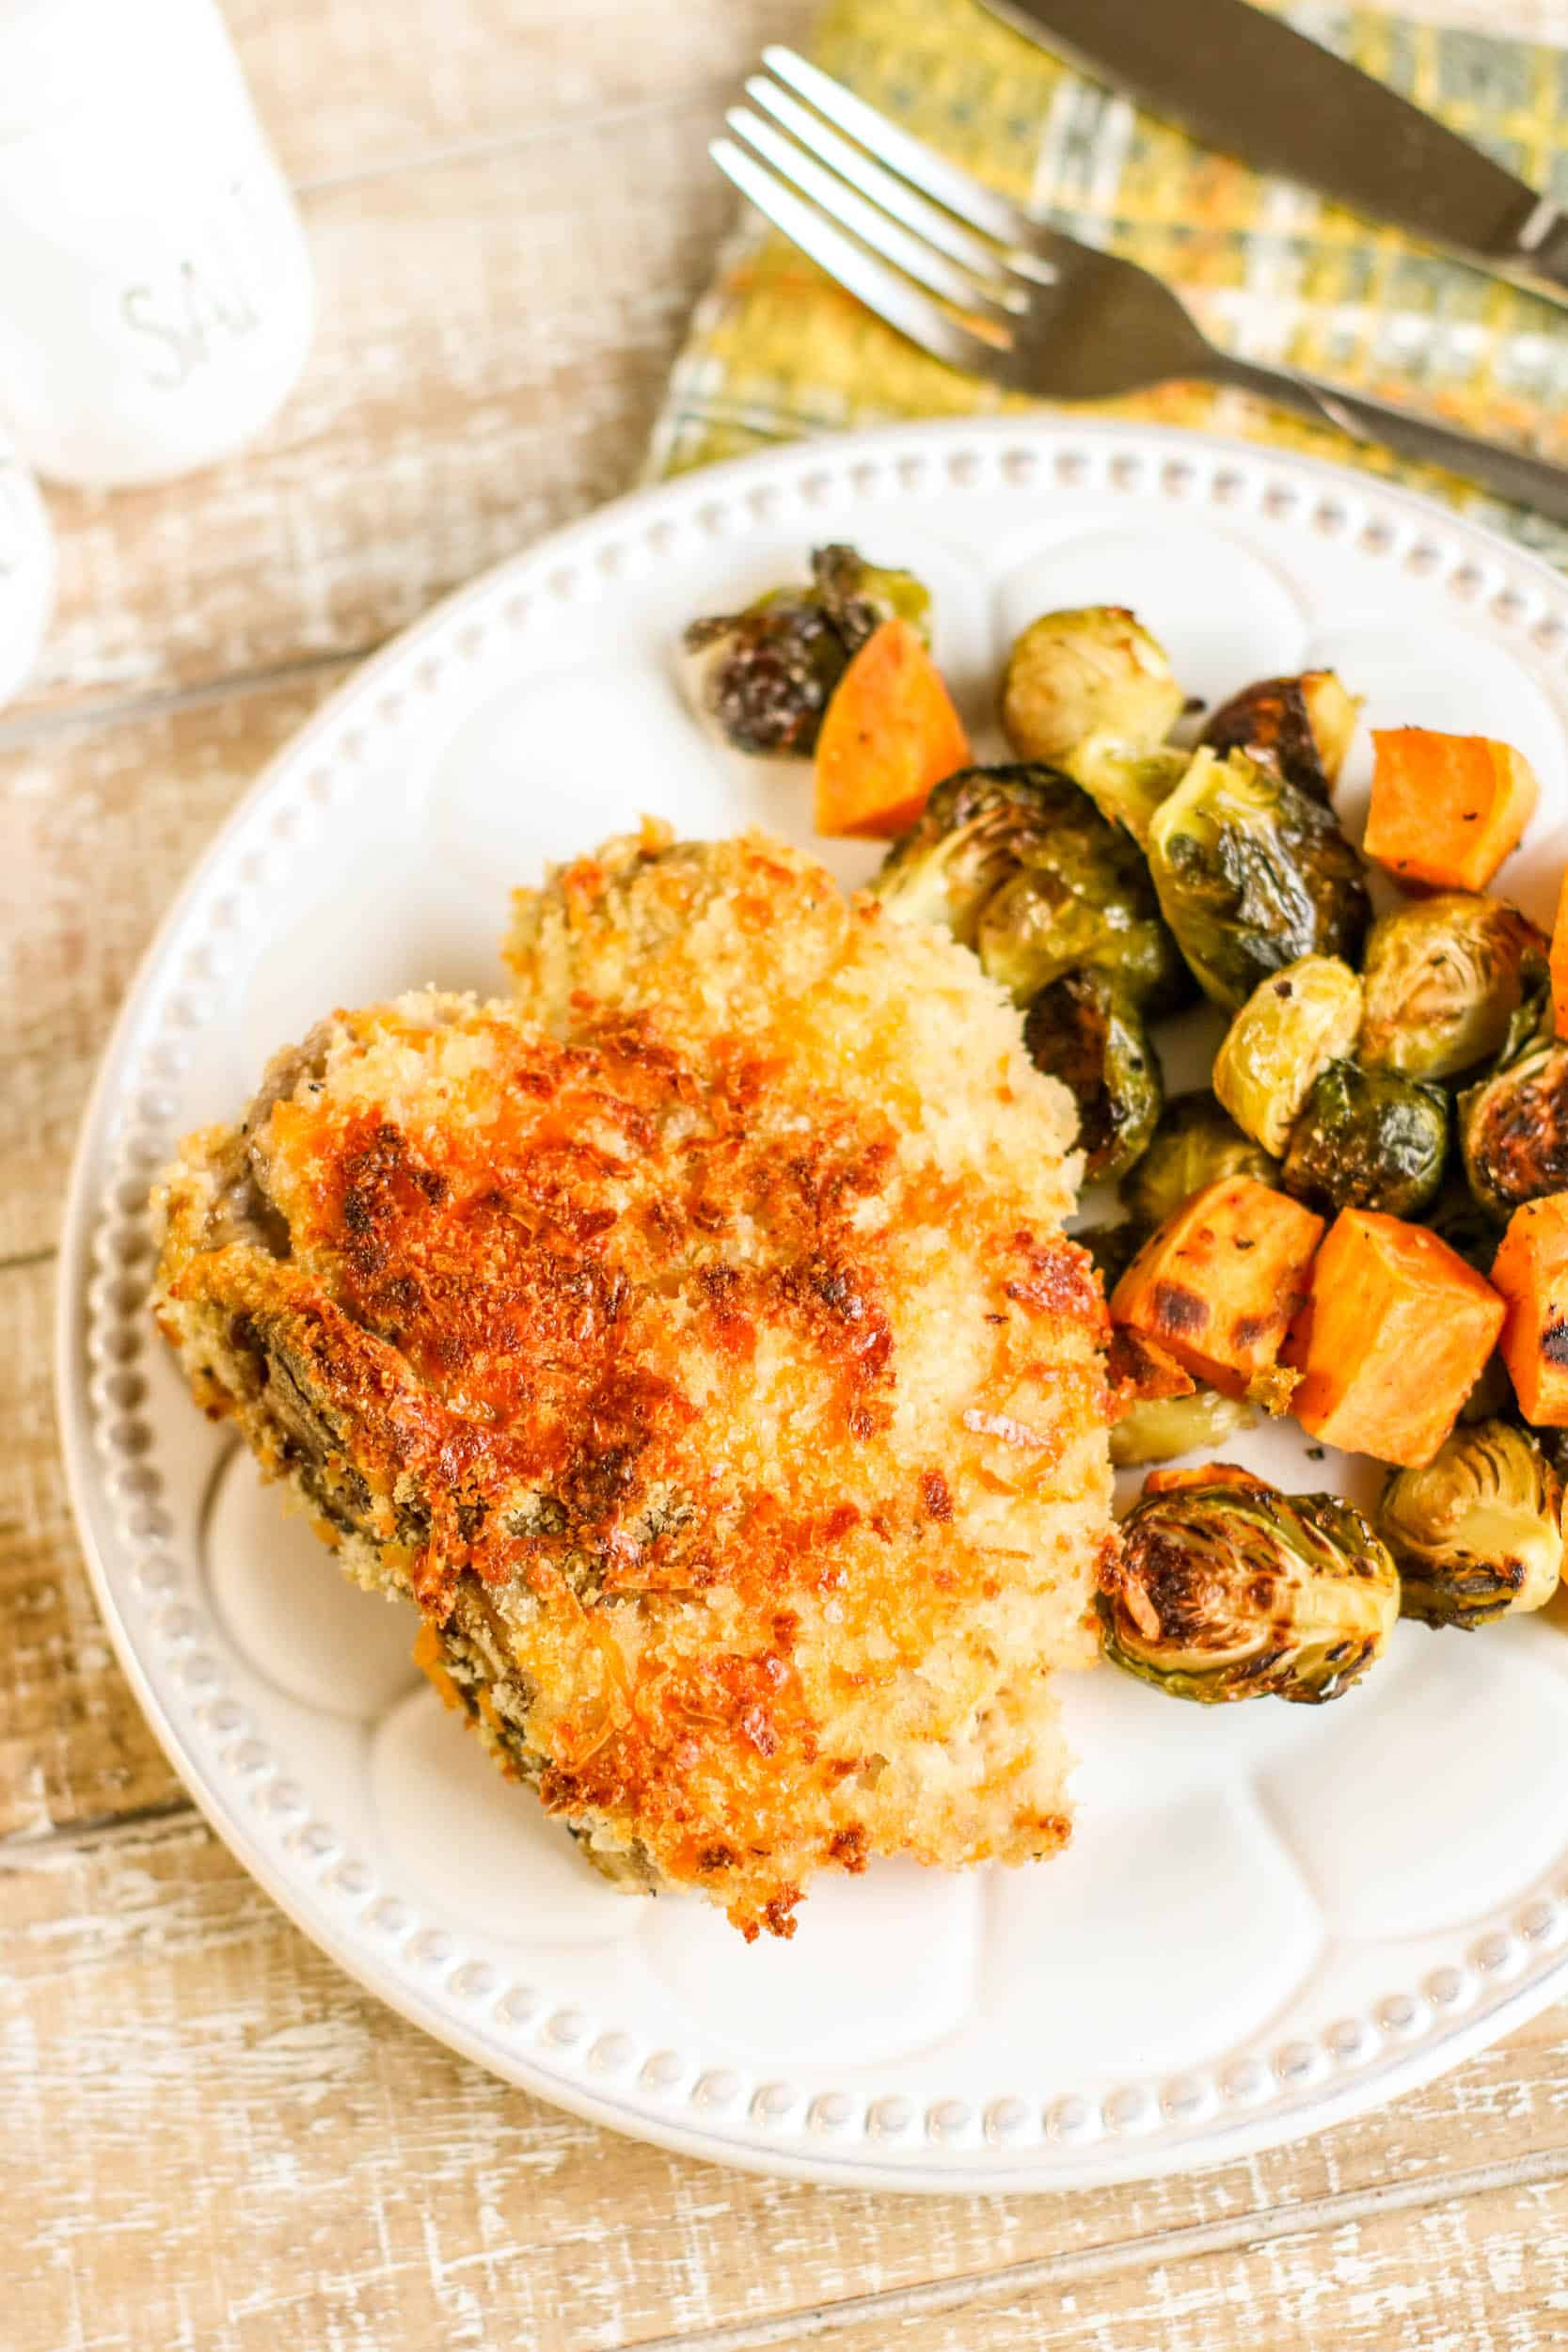 If you're looking for a complete meal baked together on one pan, this Sheet Pan Crispy Cheddar Pork Chops with Brussels Sprouts and Sweet Potatoes is it! Crispy on the outside and juicy on the inside, you'll love this method of cooking pork chops. via @Mooreorlesscook